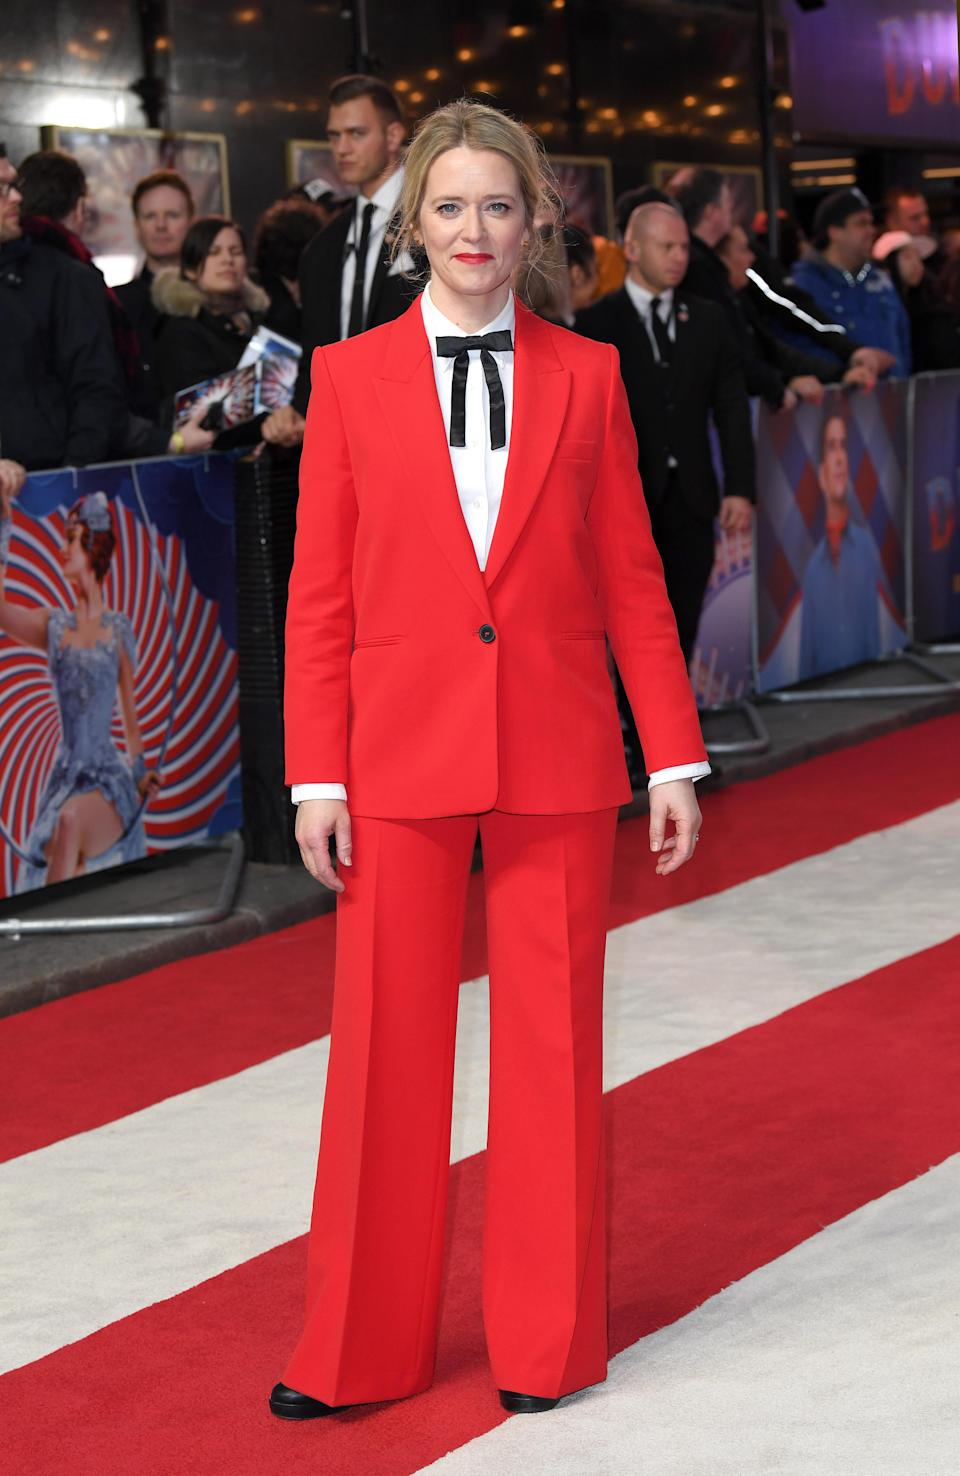 <p>The television presenter wore a red trouser suit, white shirt and black neck tie on the red carpet for the 'Dumbo' premiere in London. <em>[Photo: Getty]</em> </p>